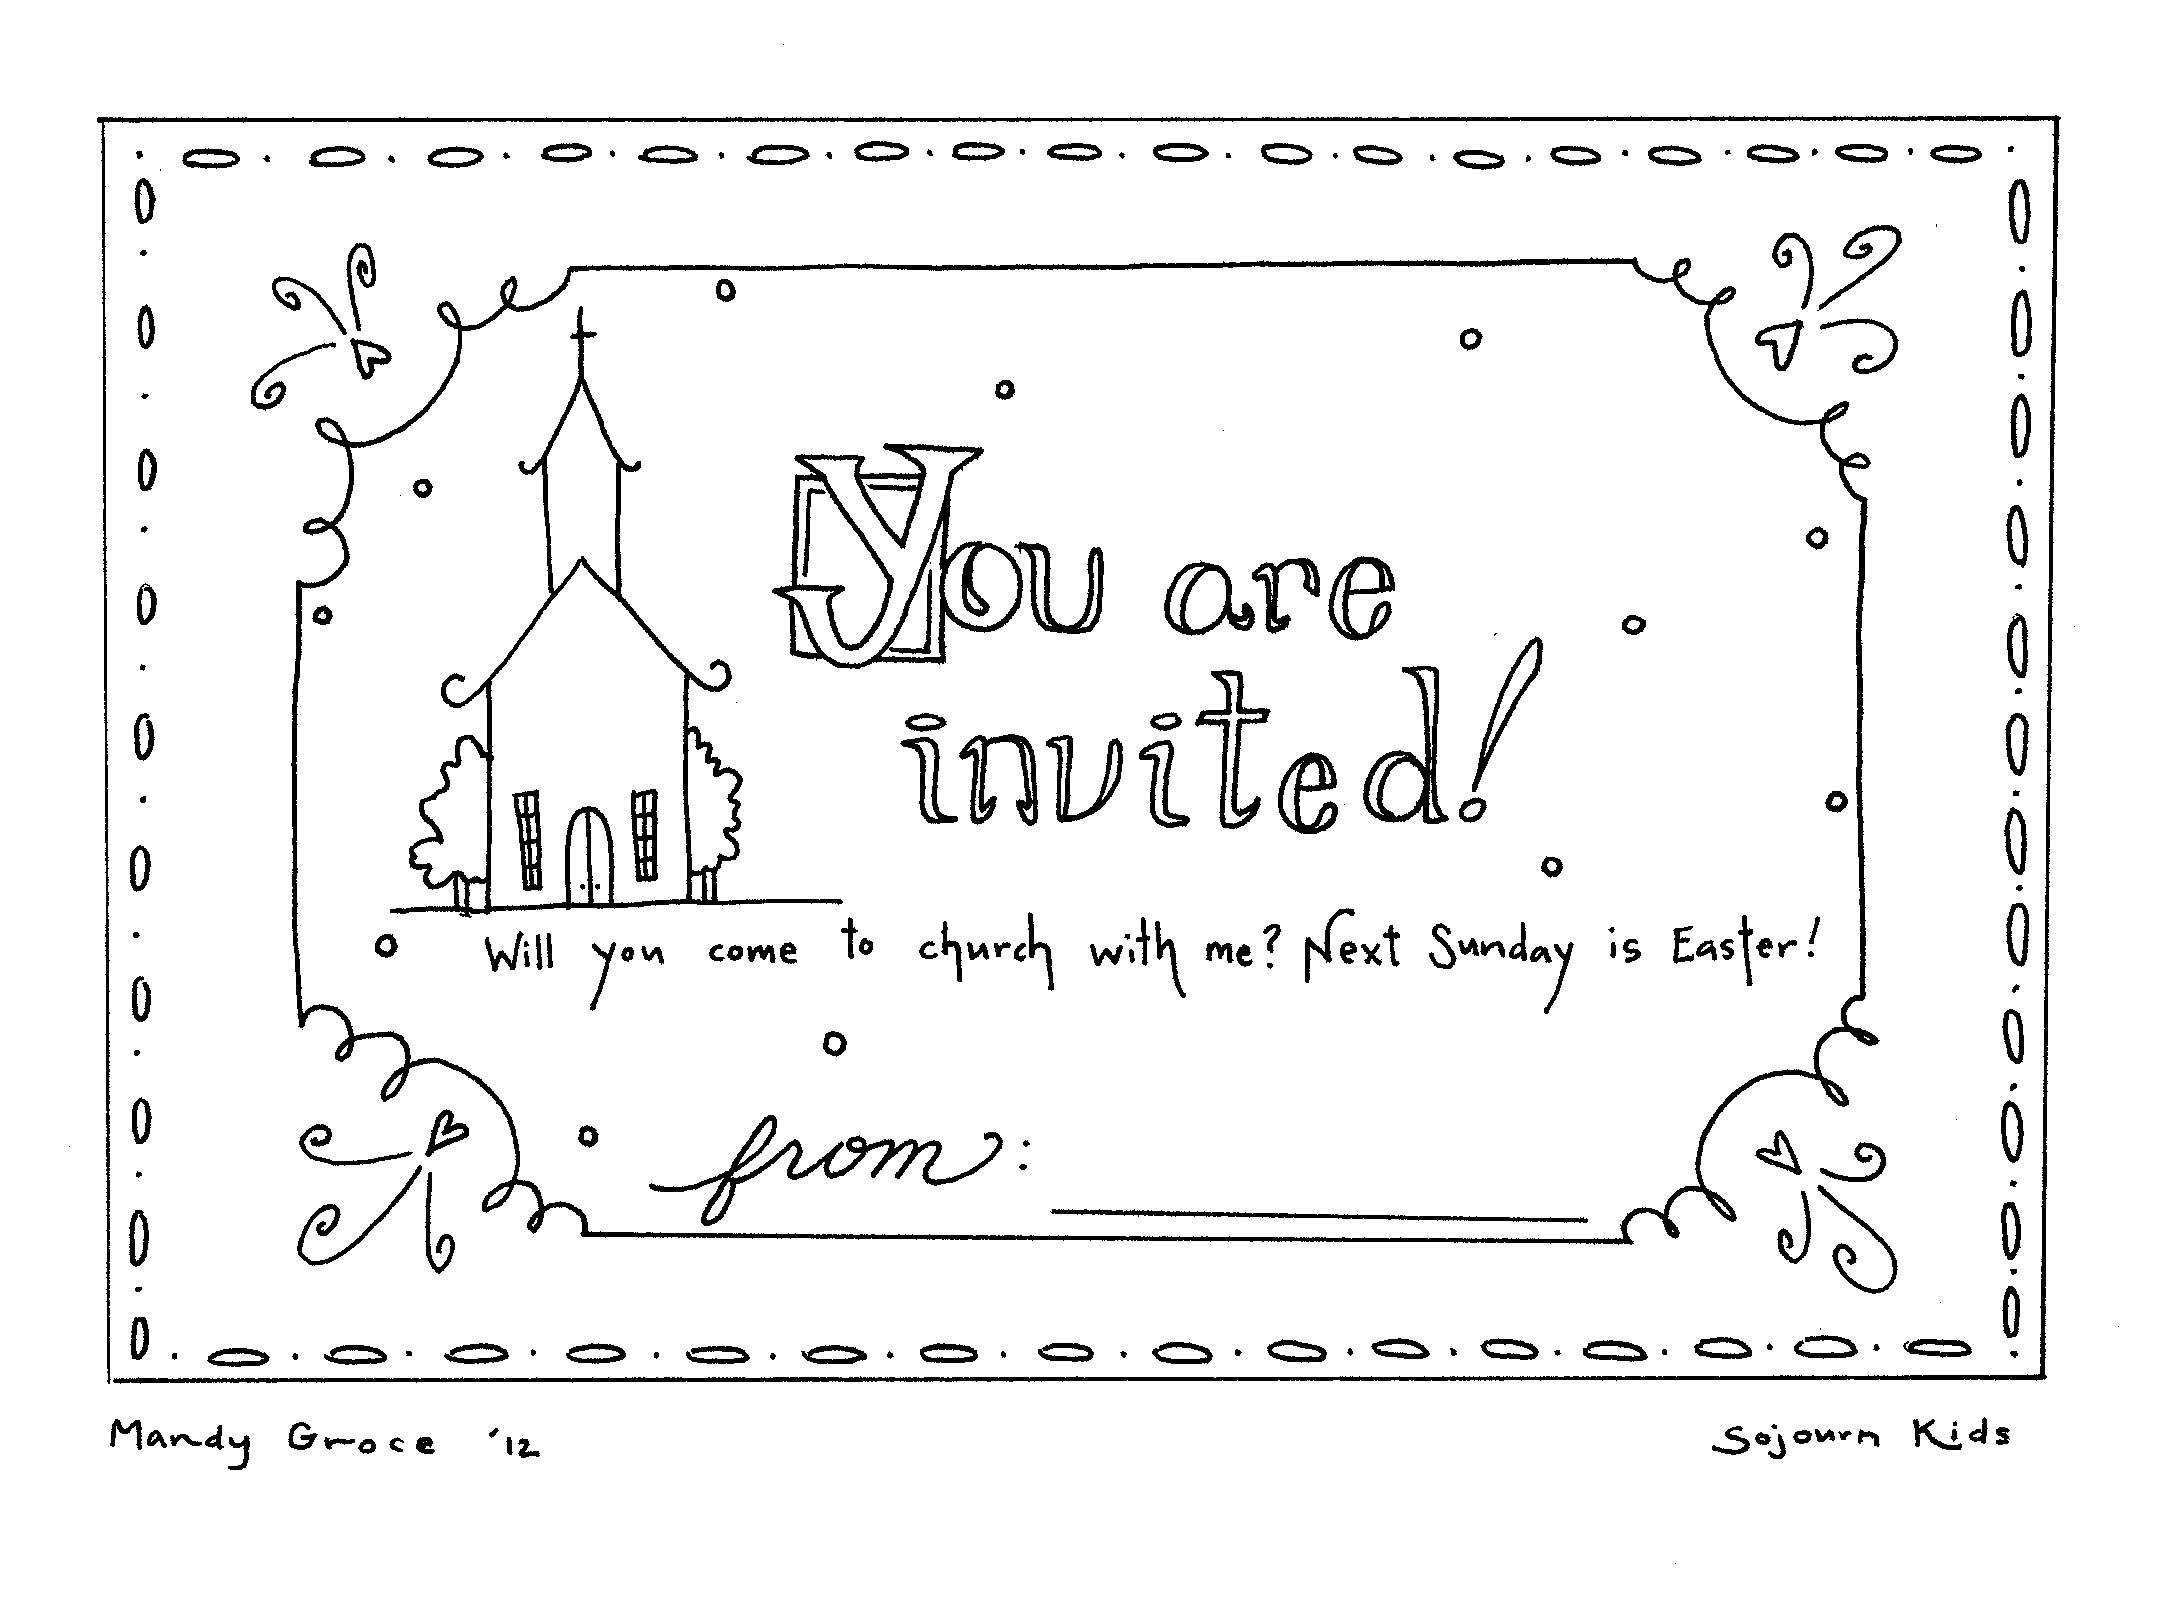 Easter Sunday Invitation Coloring Pages Sunday school